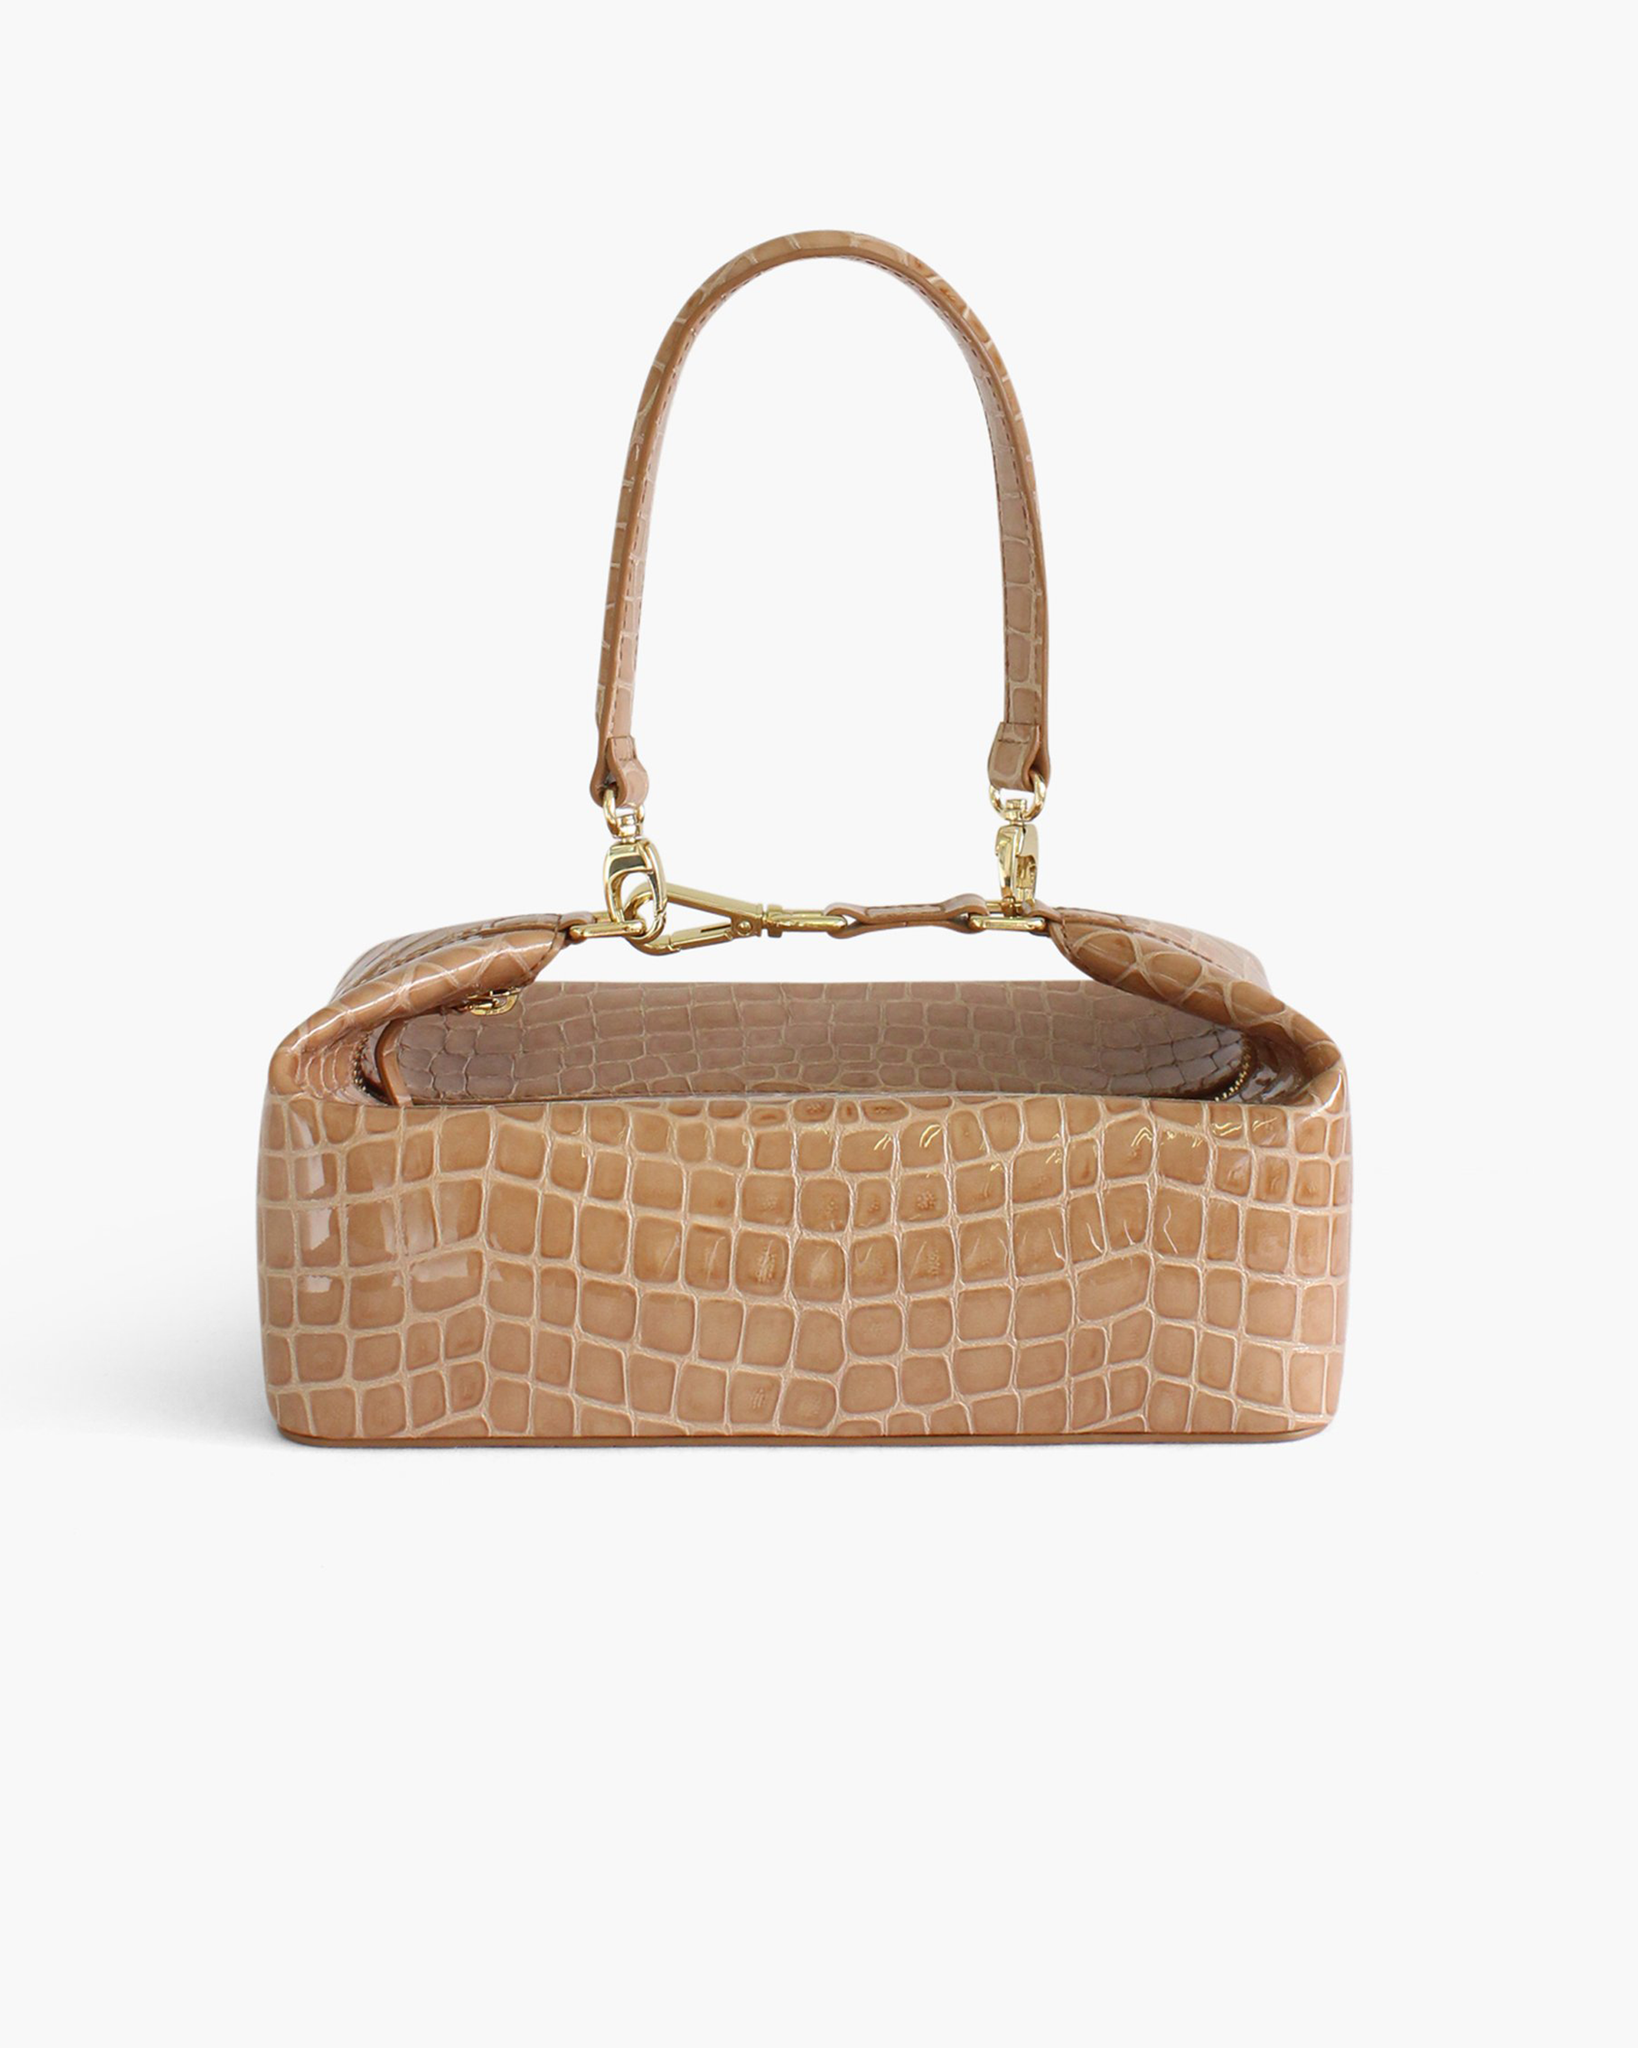 Olivia Bag Leather Patent Croc Taupe - SPECIAL PRICE